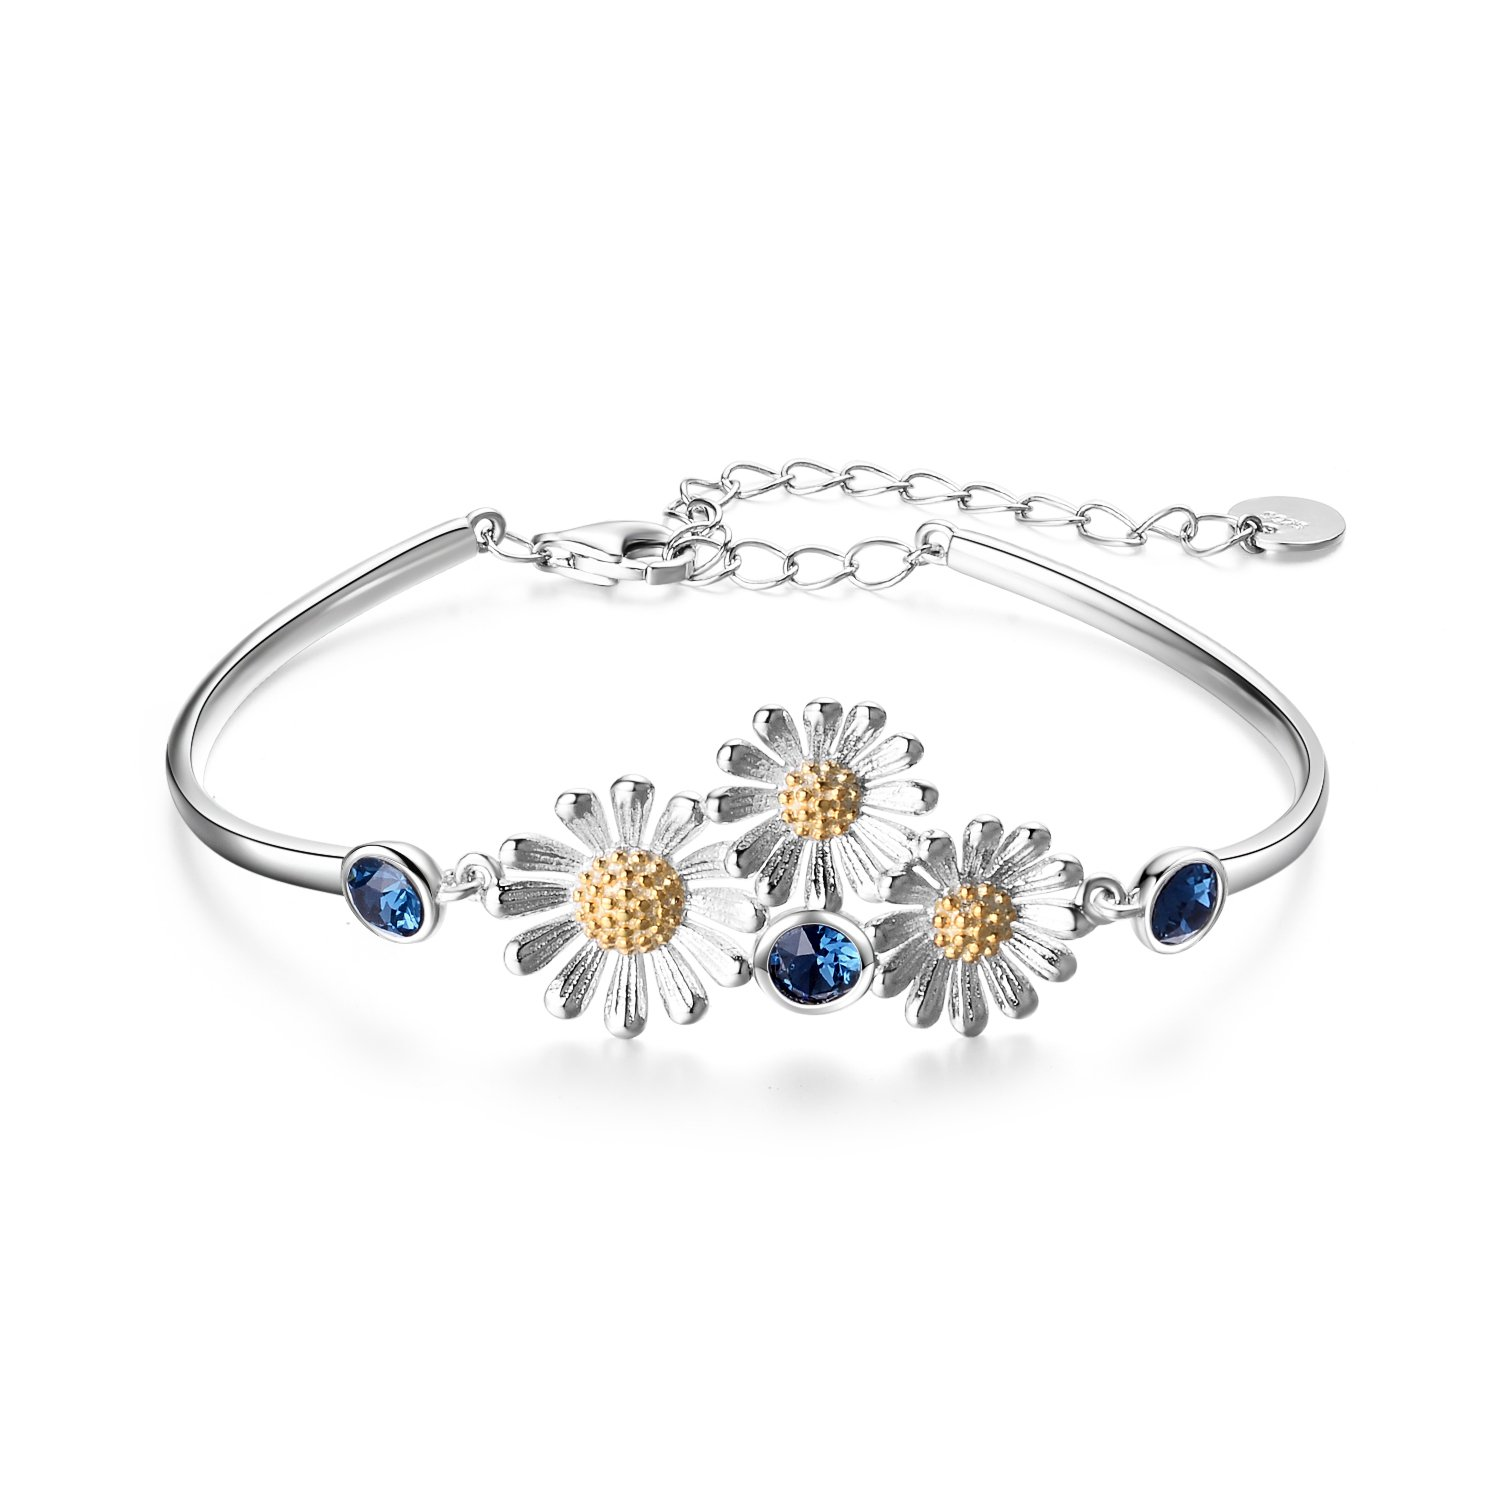 YAFEINI 925 Sterling Silver Daisy Sunflower Charm Flower Bracelet Best Gifts for Women and Girls by YAFEINI